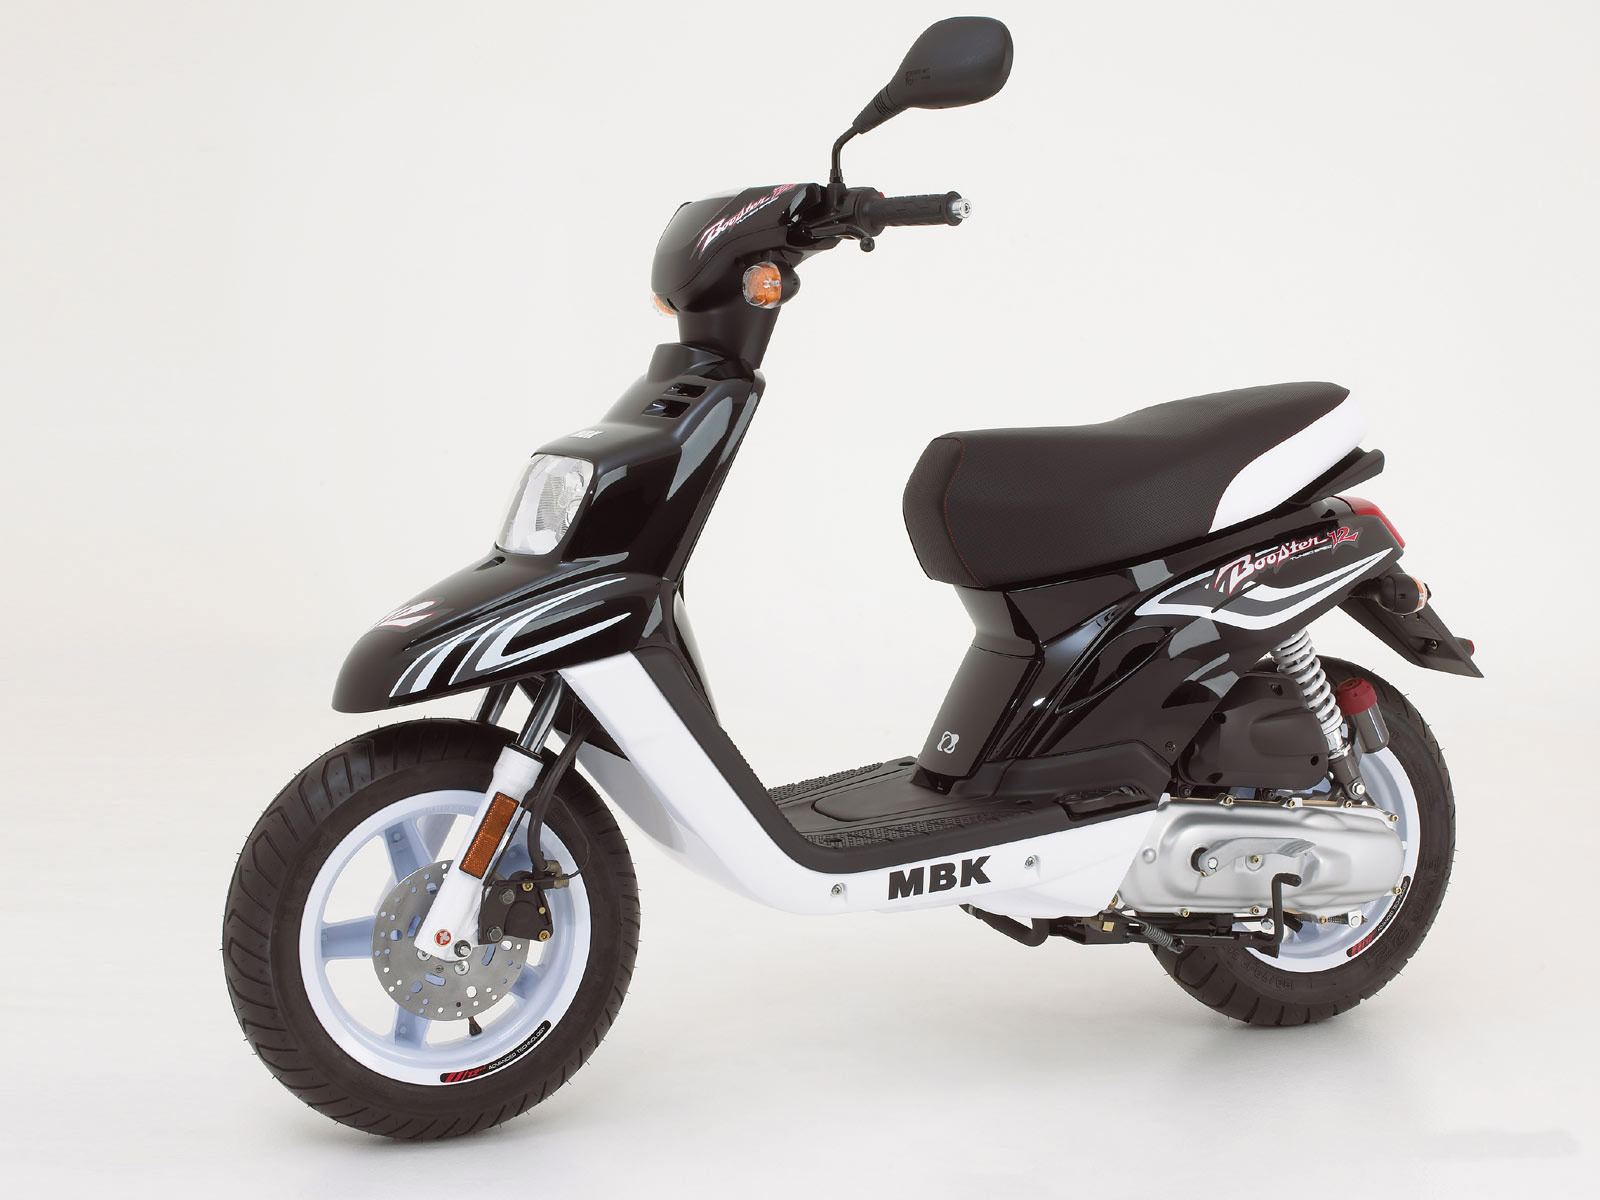 2007 mbk booster 12inch scooter picture and specifications. Black Bedroom Furniture Sets. Home Design Ideas